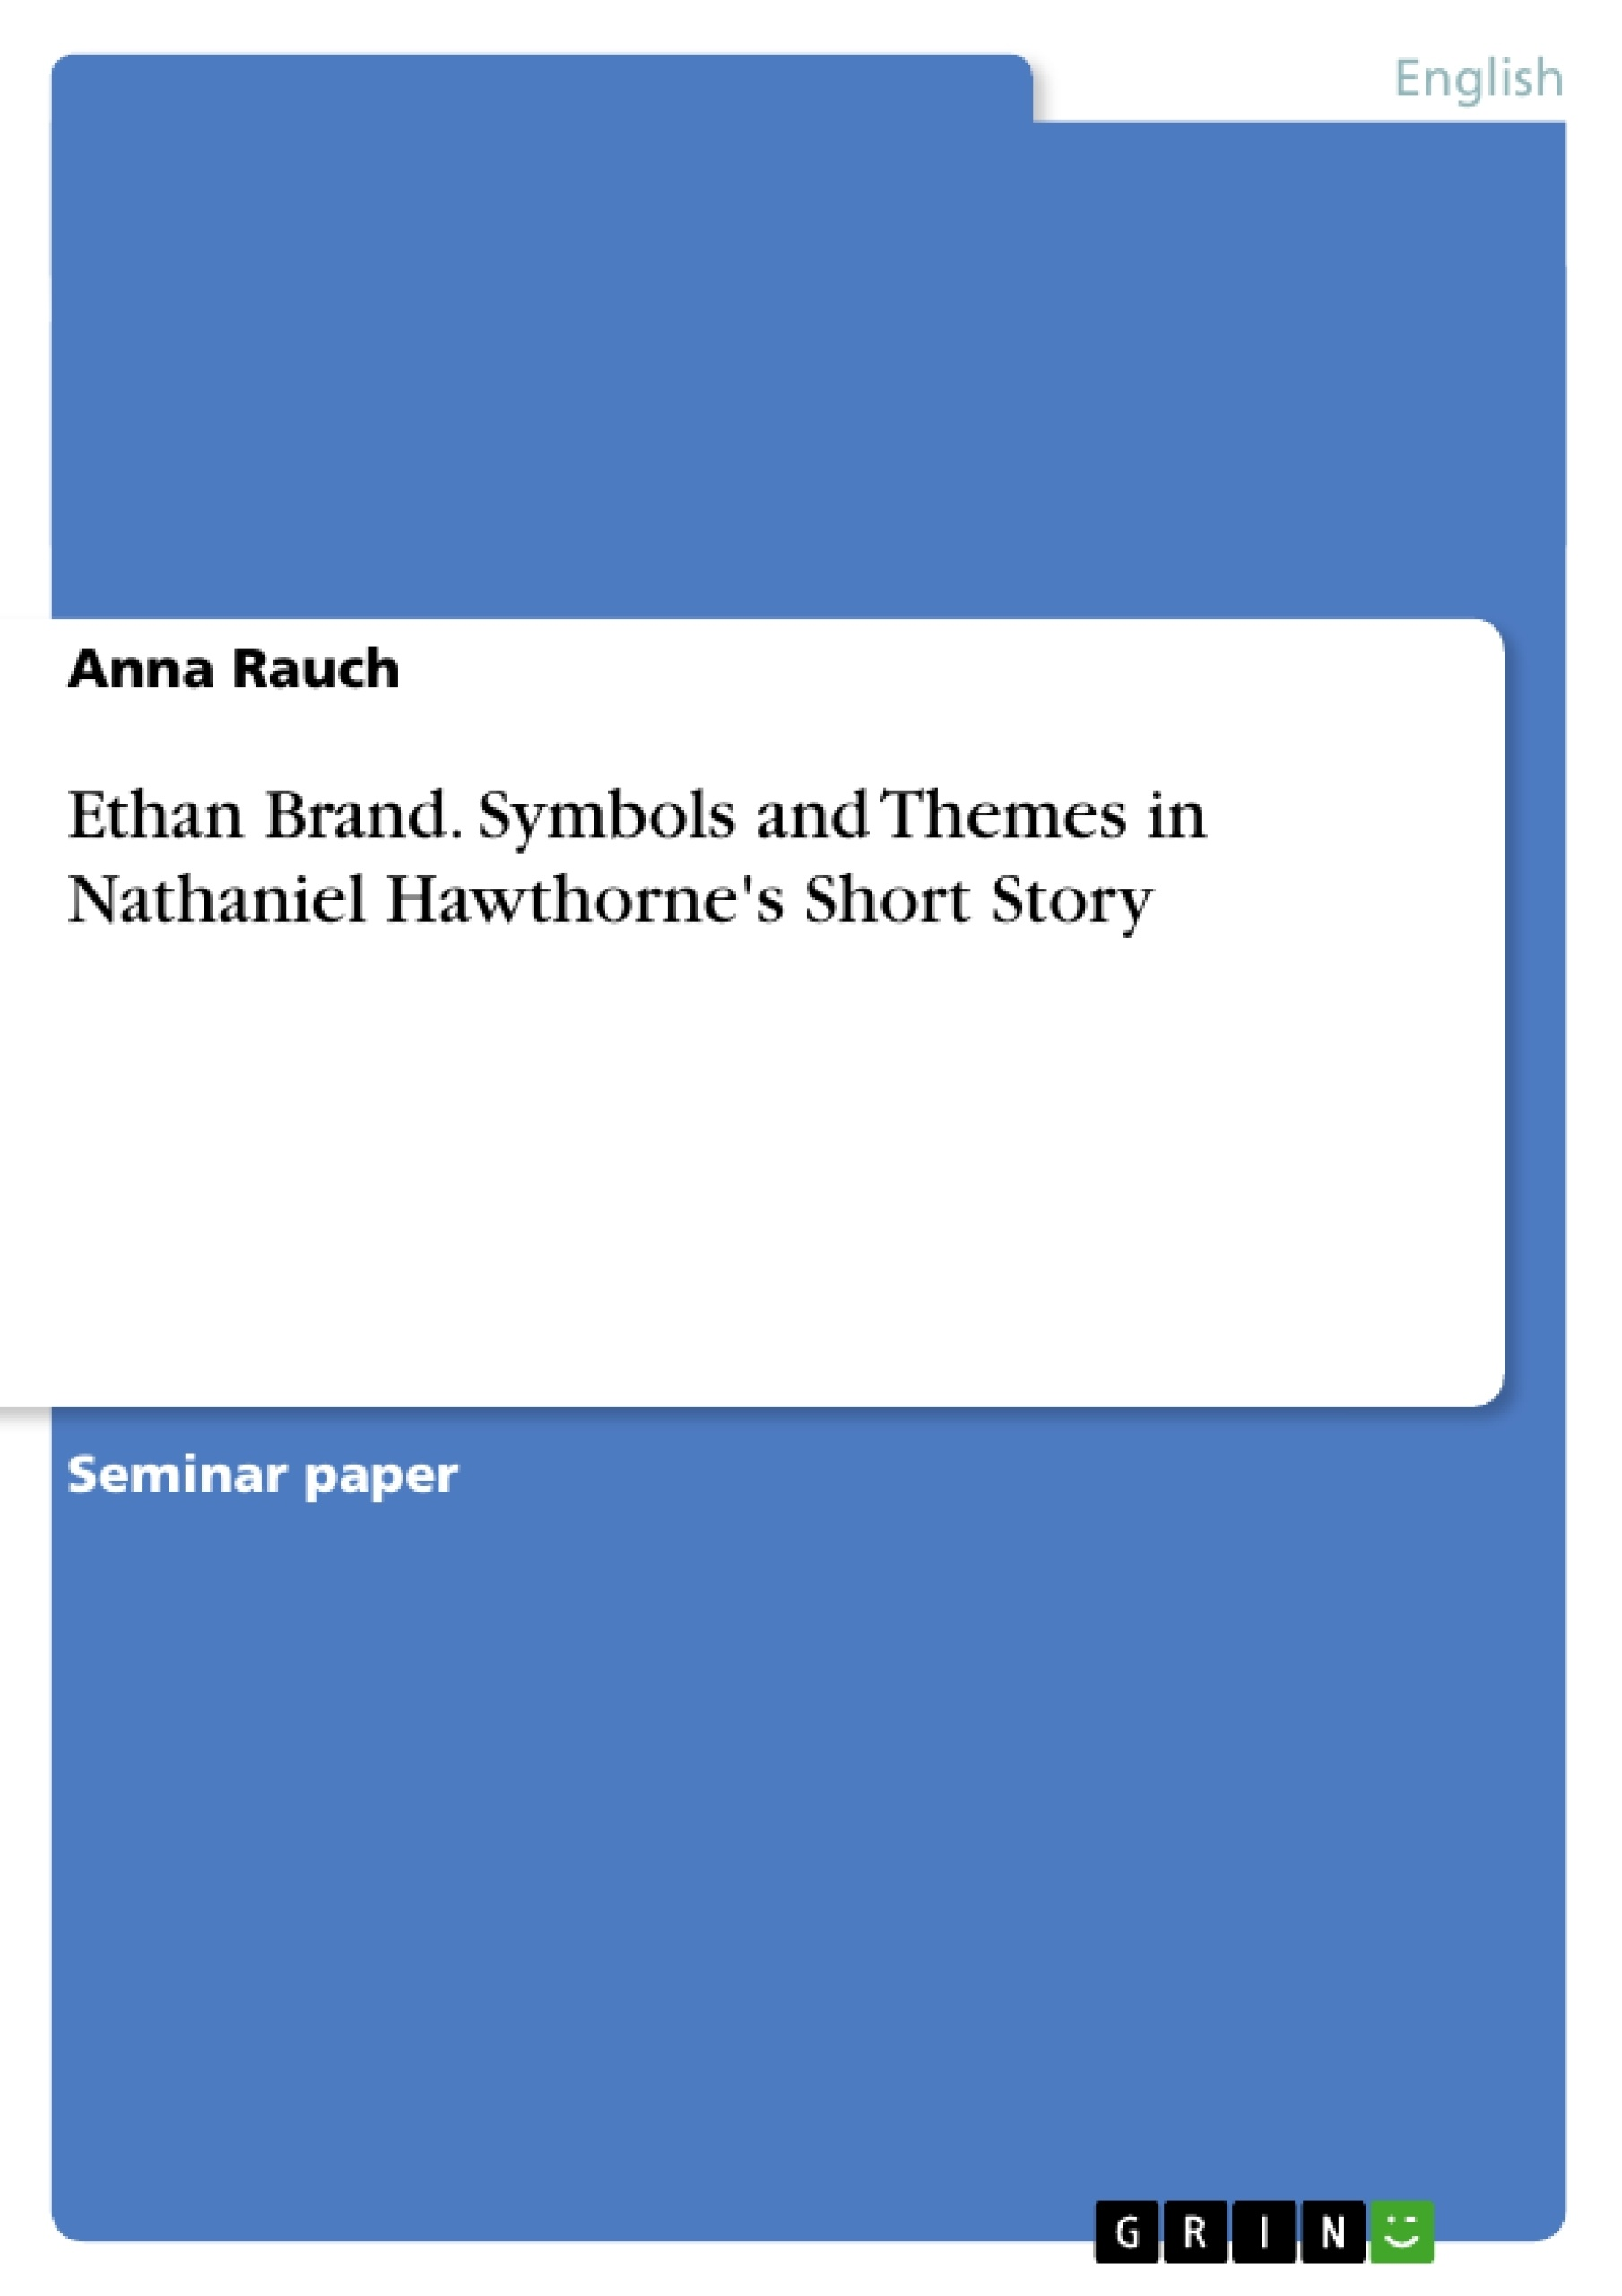 Title: Ethan Brand. Symbols and Themes in Nathaniel Hawthorne's Short Story